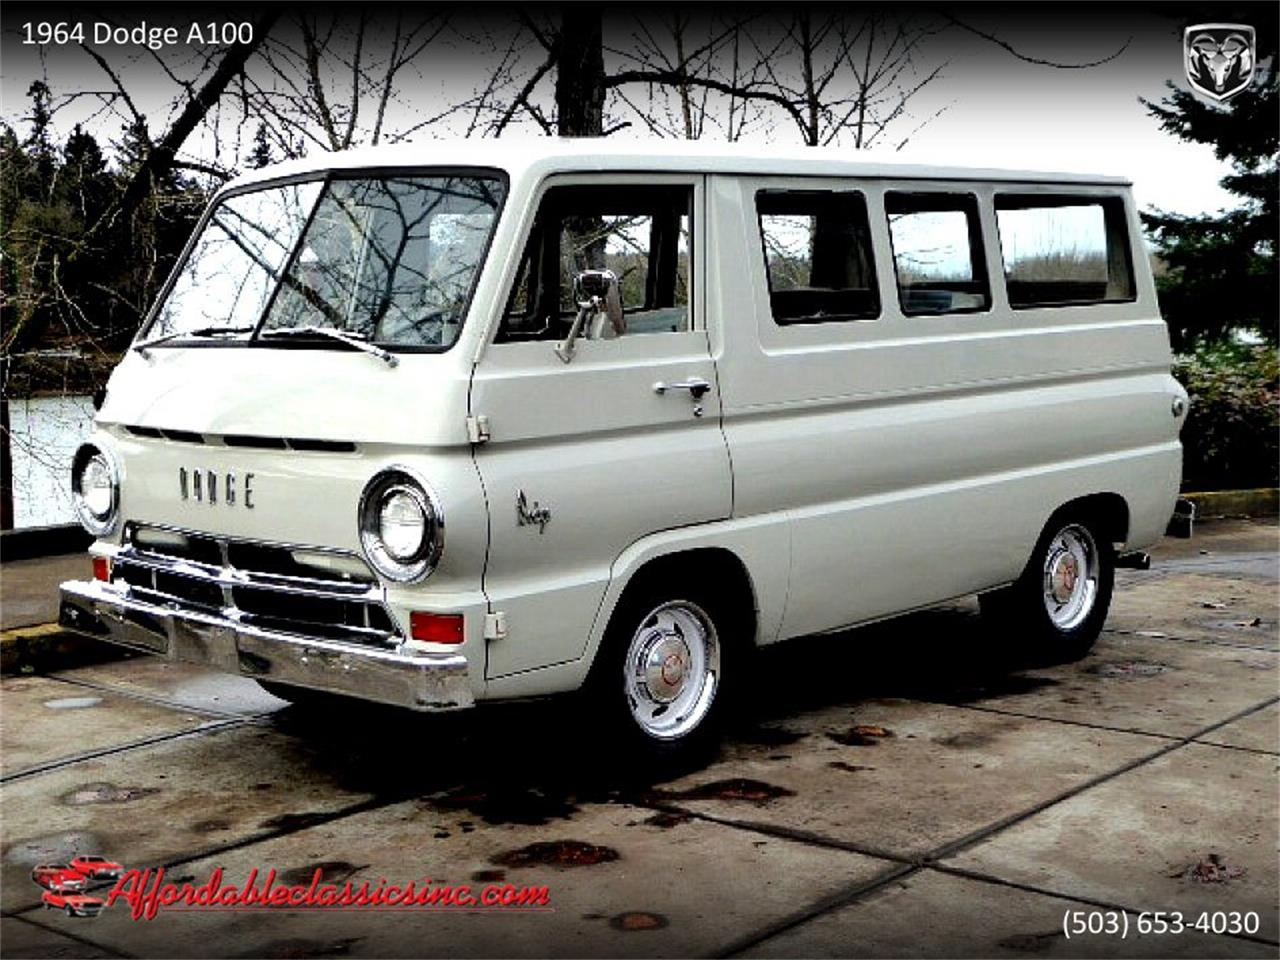 Dodge A100 For Sale >> For Sale 1964 Dodge A100 In Gladstone Oregon